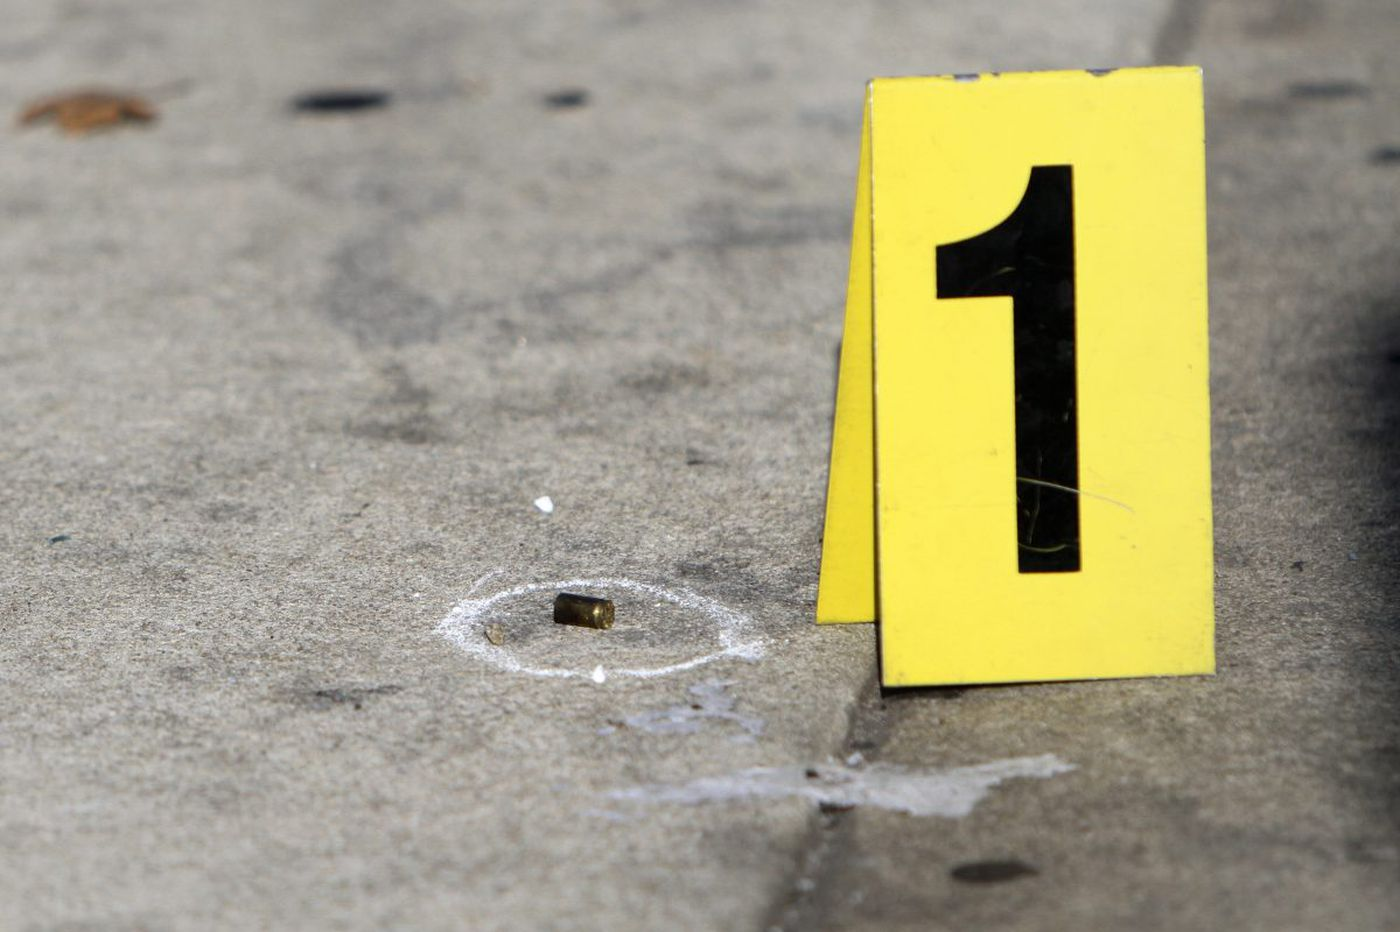 Police: Man who shot at officers wounded when police return fire